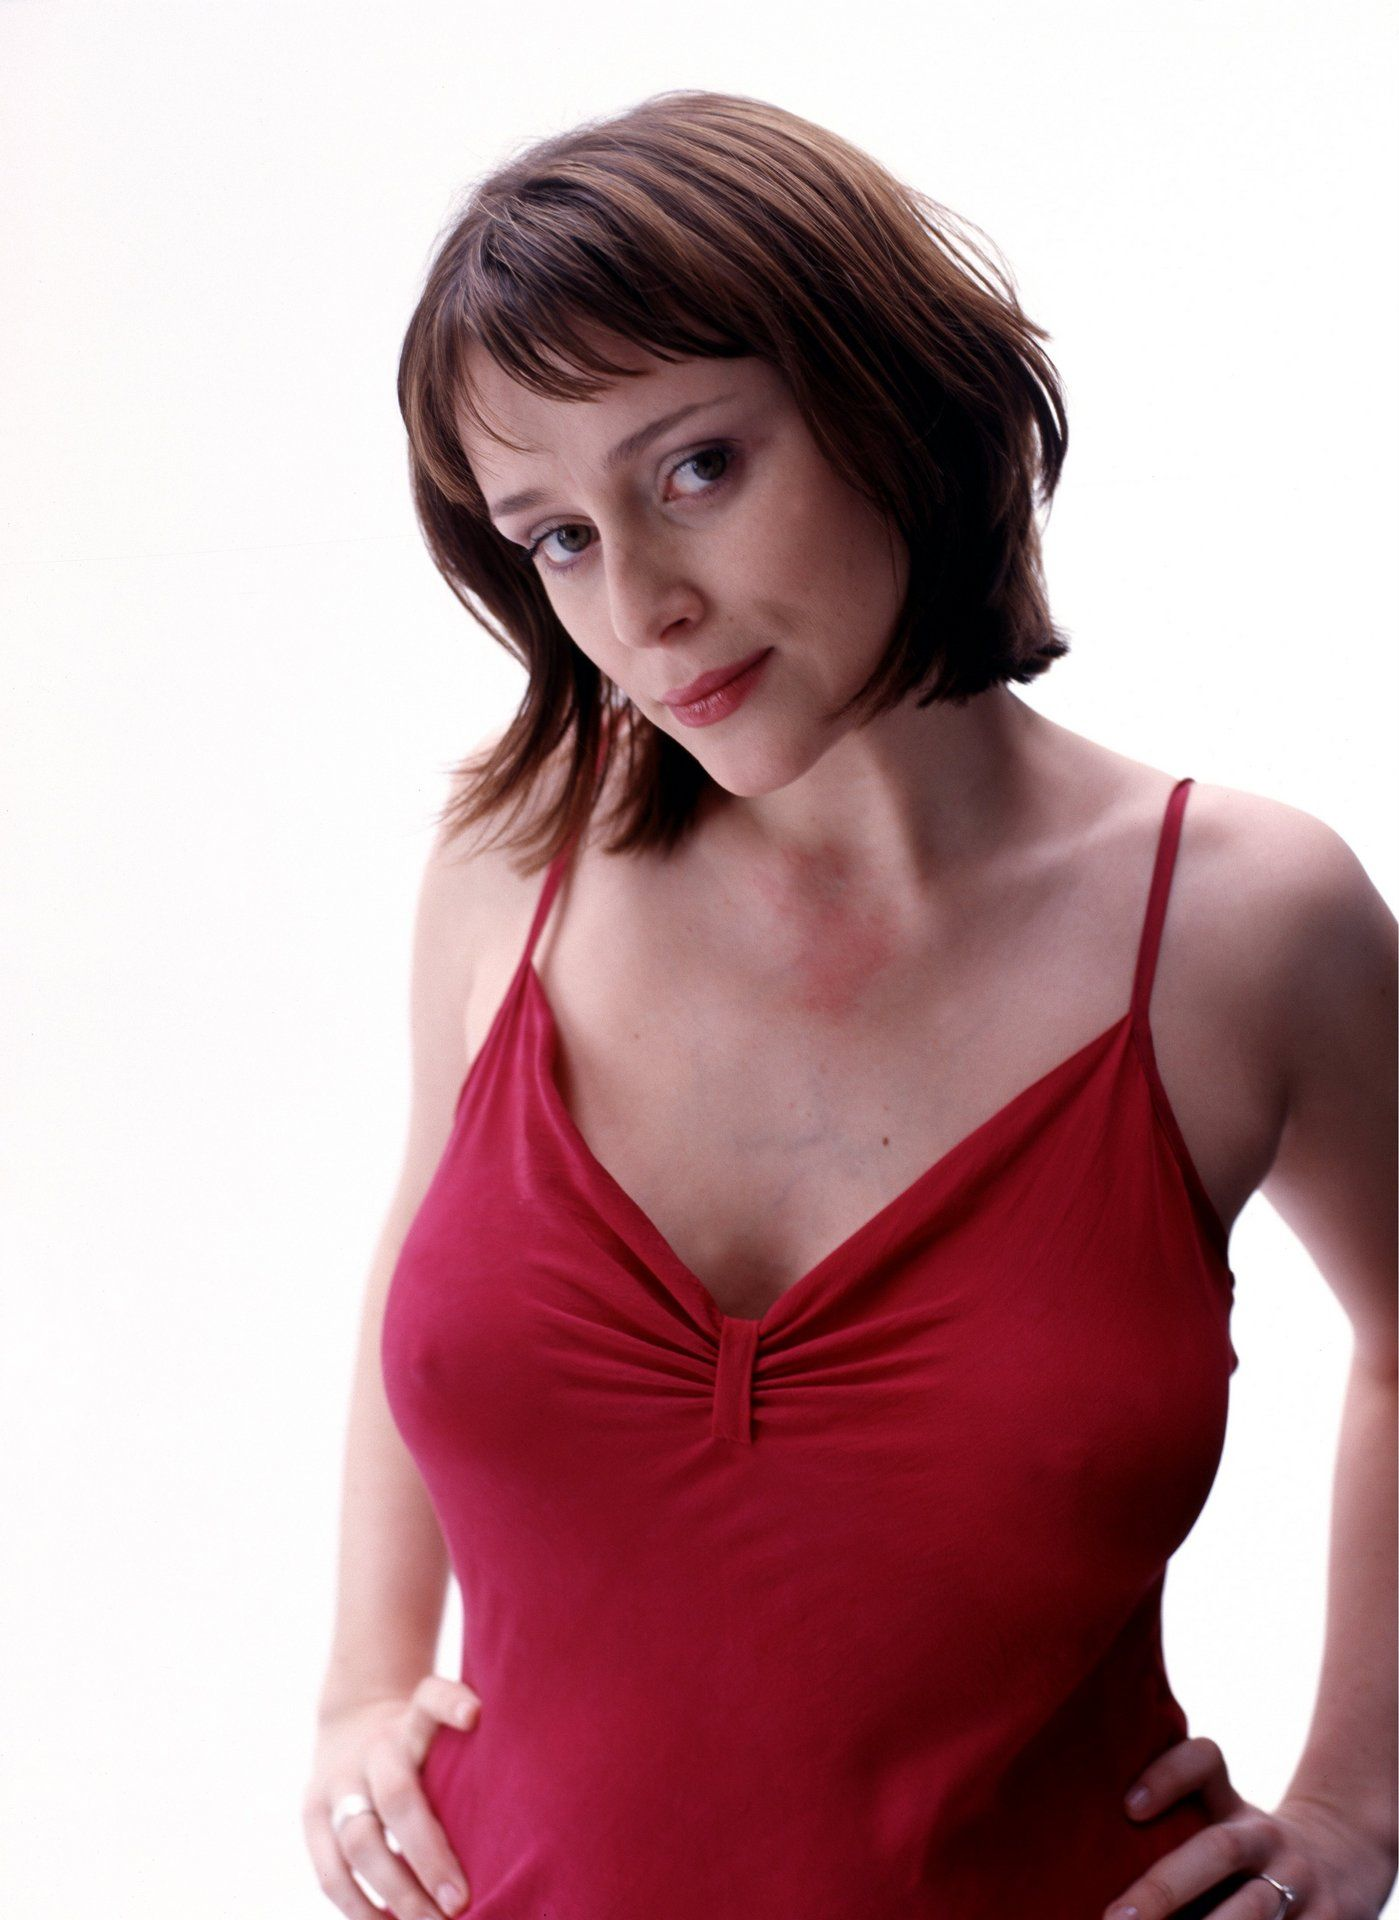 Keeley Hawes (born 1976) nudes (76 photos), Pussy, Hot, Feet, braless 2006